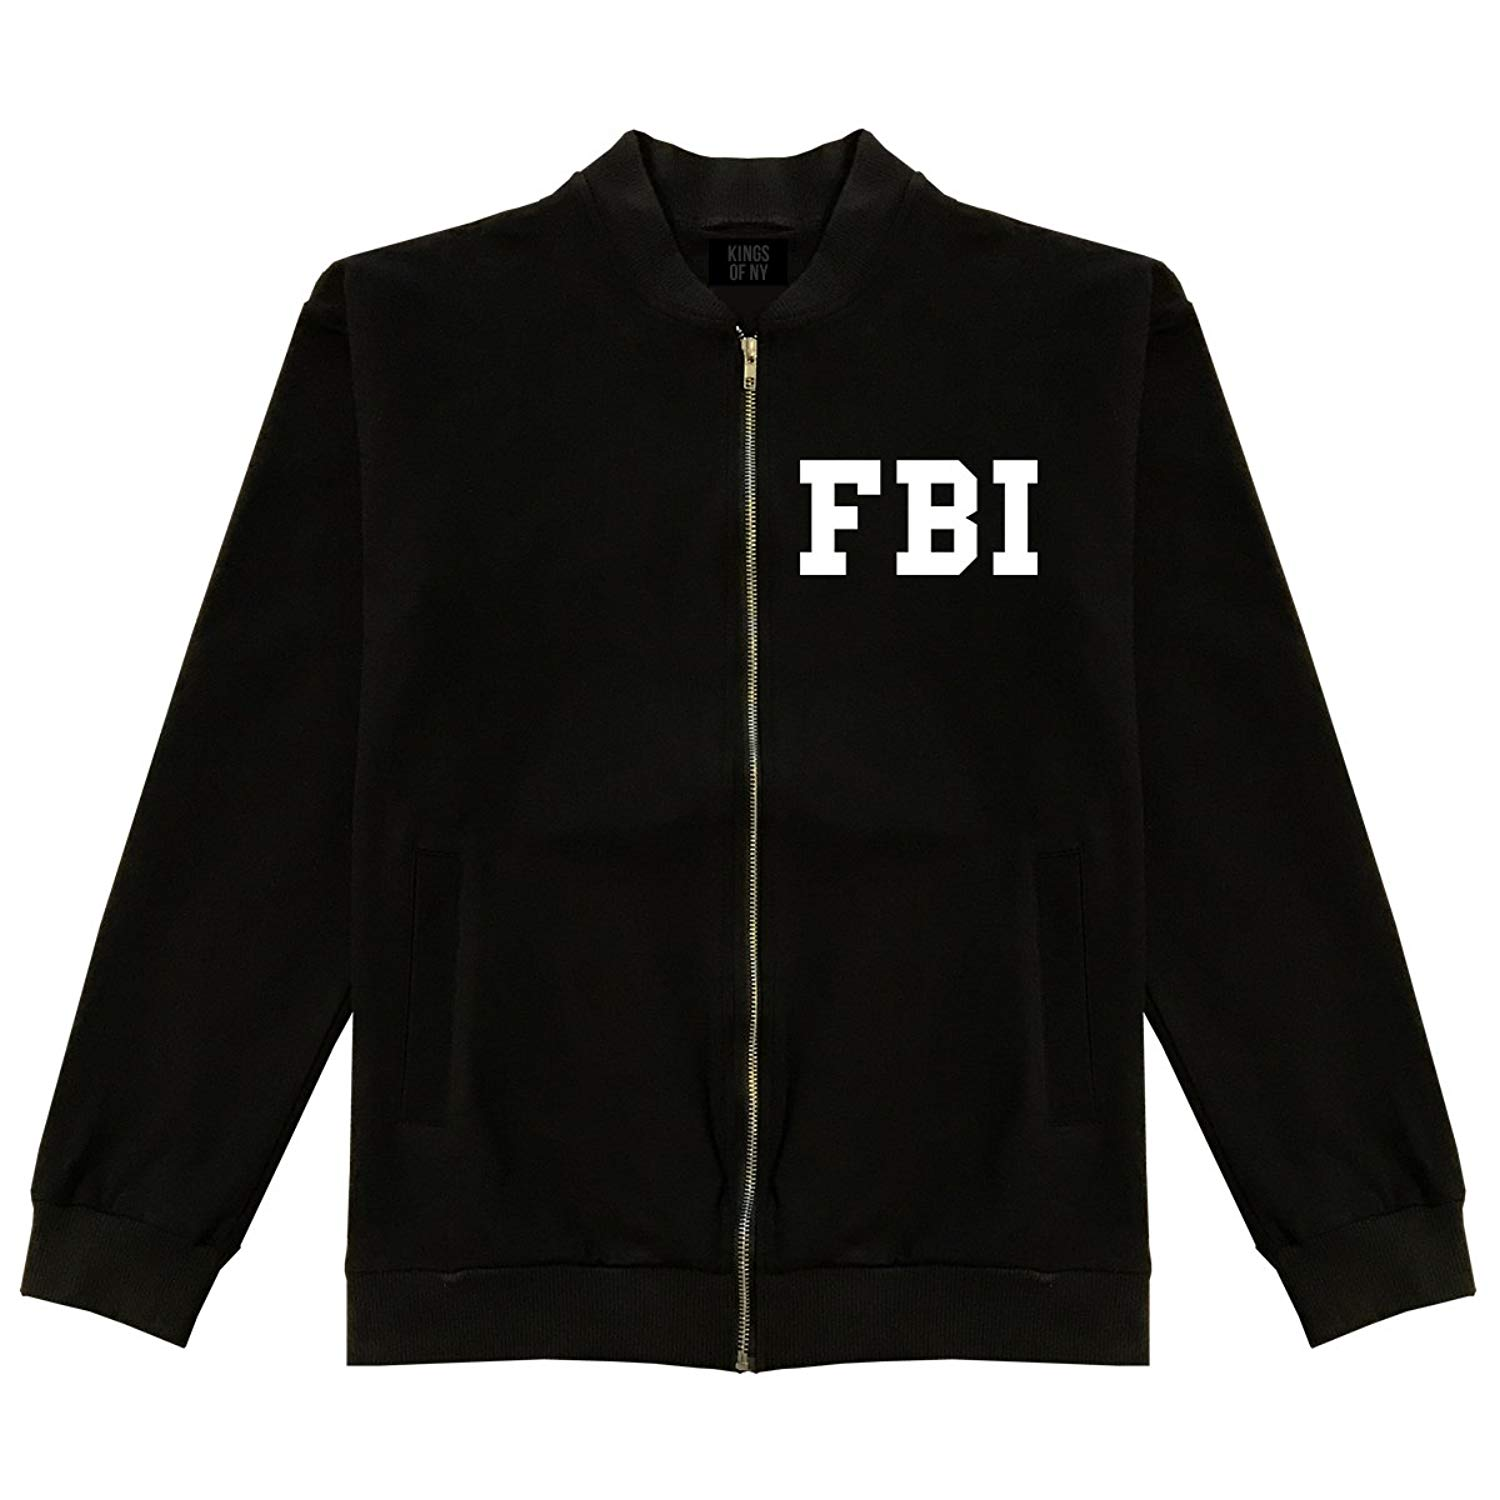 efe8c2699 Cheap Fbi Jacket, find Fbi Jacket deals on line at Alibaba.com